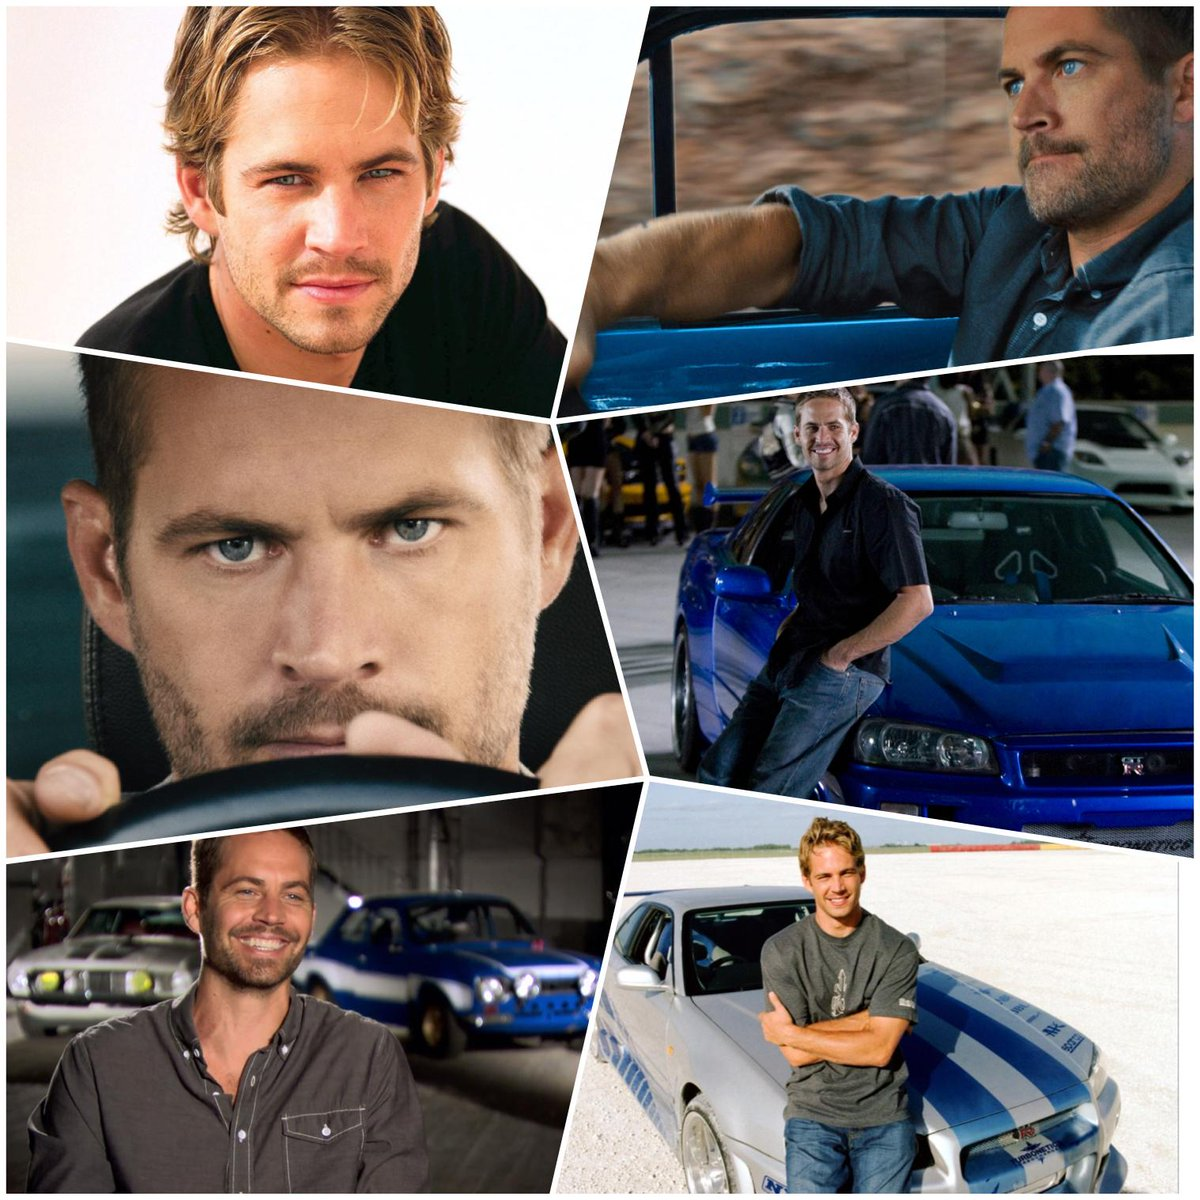 It has been quite a ride... - #TeamPW   #FastandFurious #ForPaul http://t.co/MBUP1t3jAN